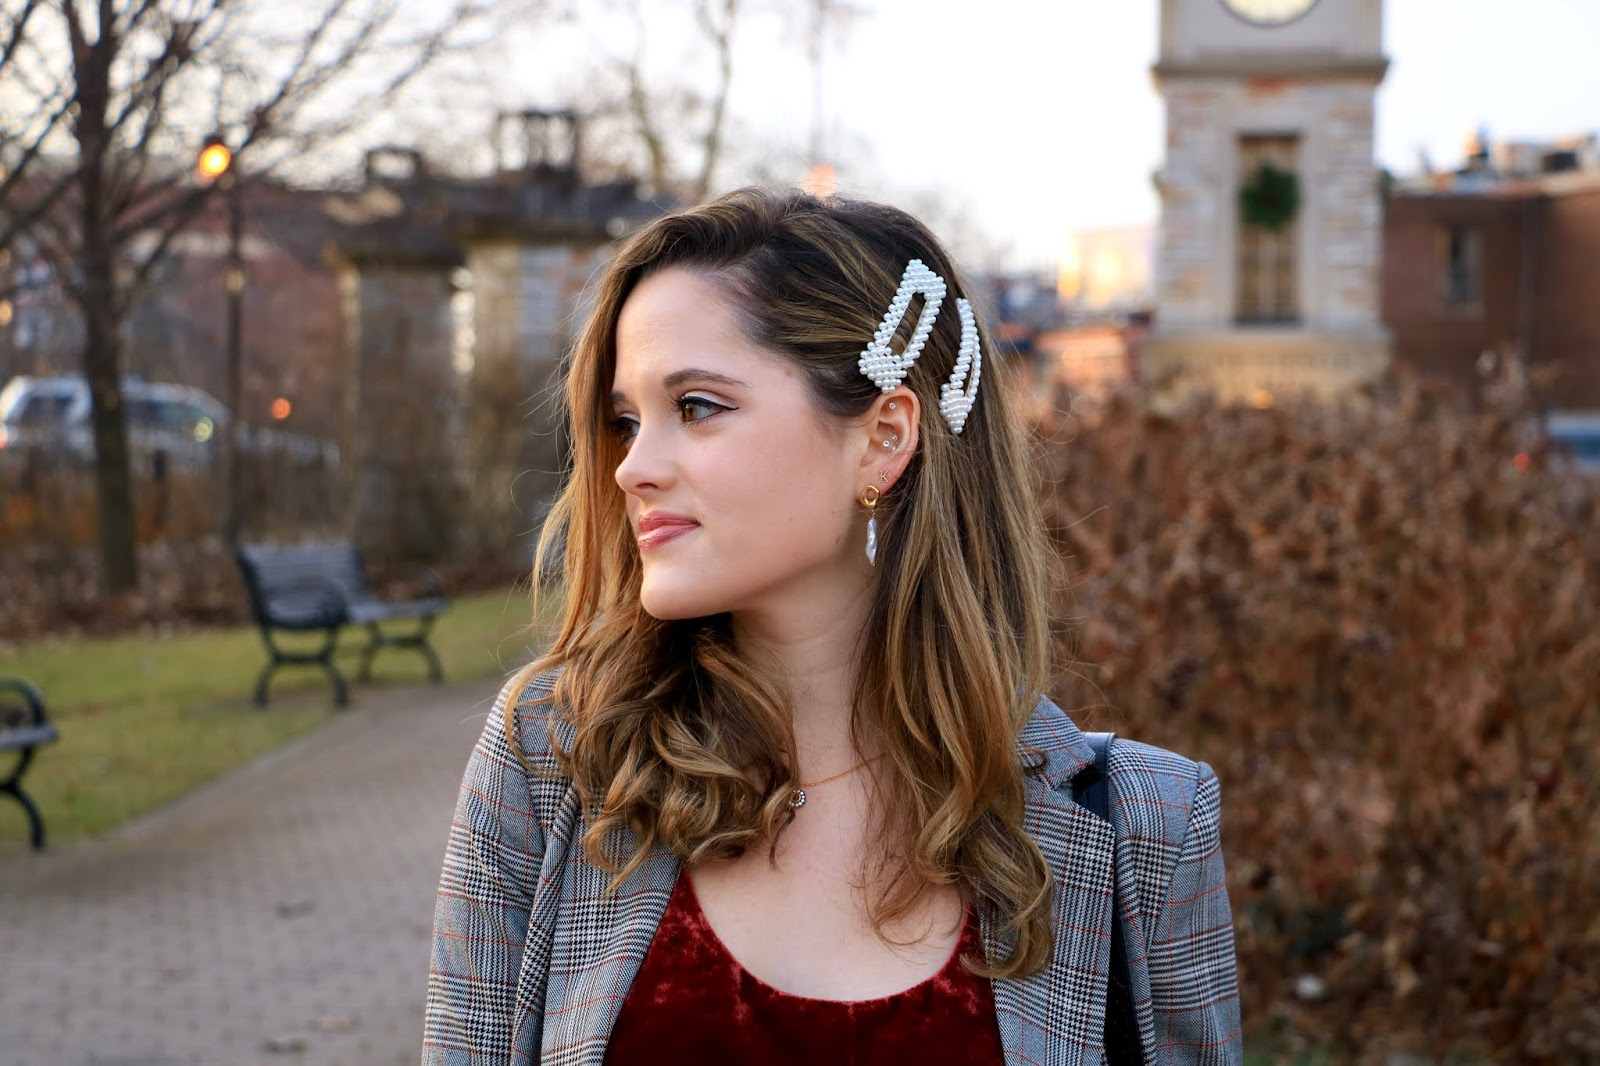 Nyc fashion blogger Kathleen Harper wearing pearl clips in her hair.